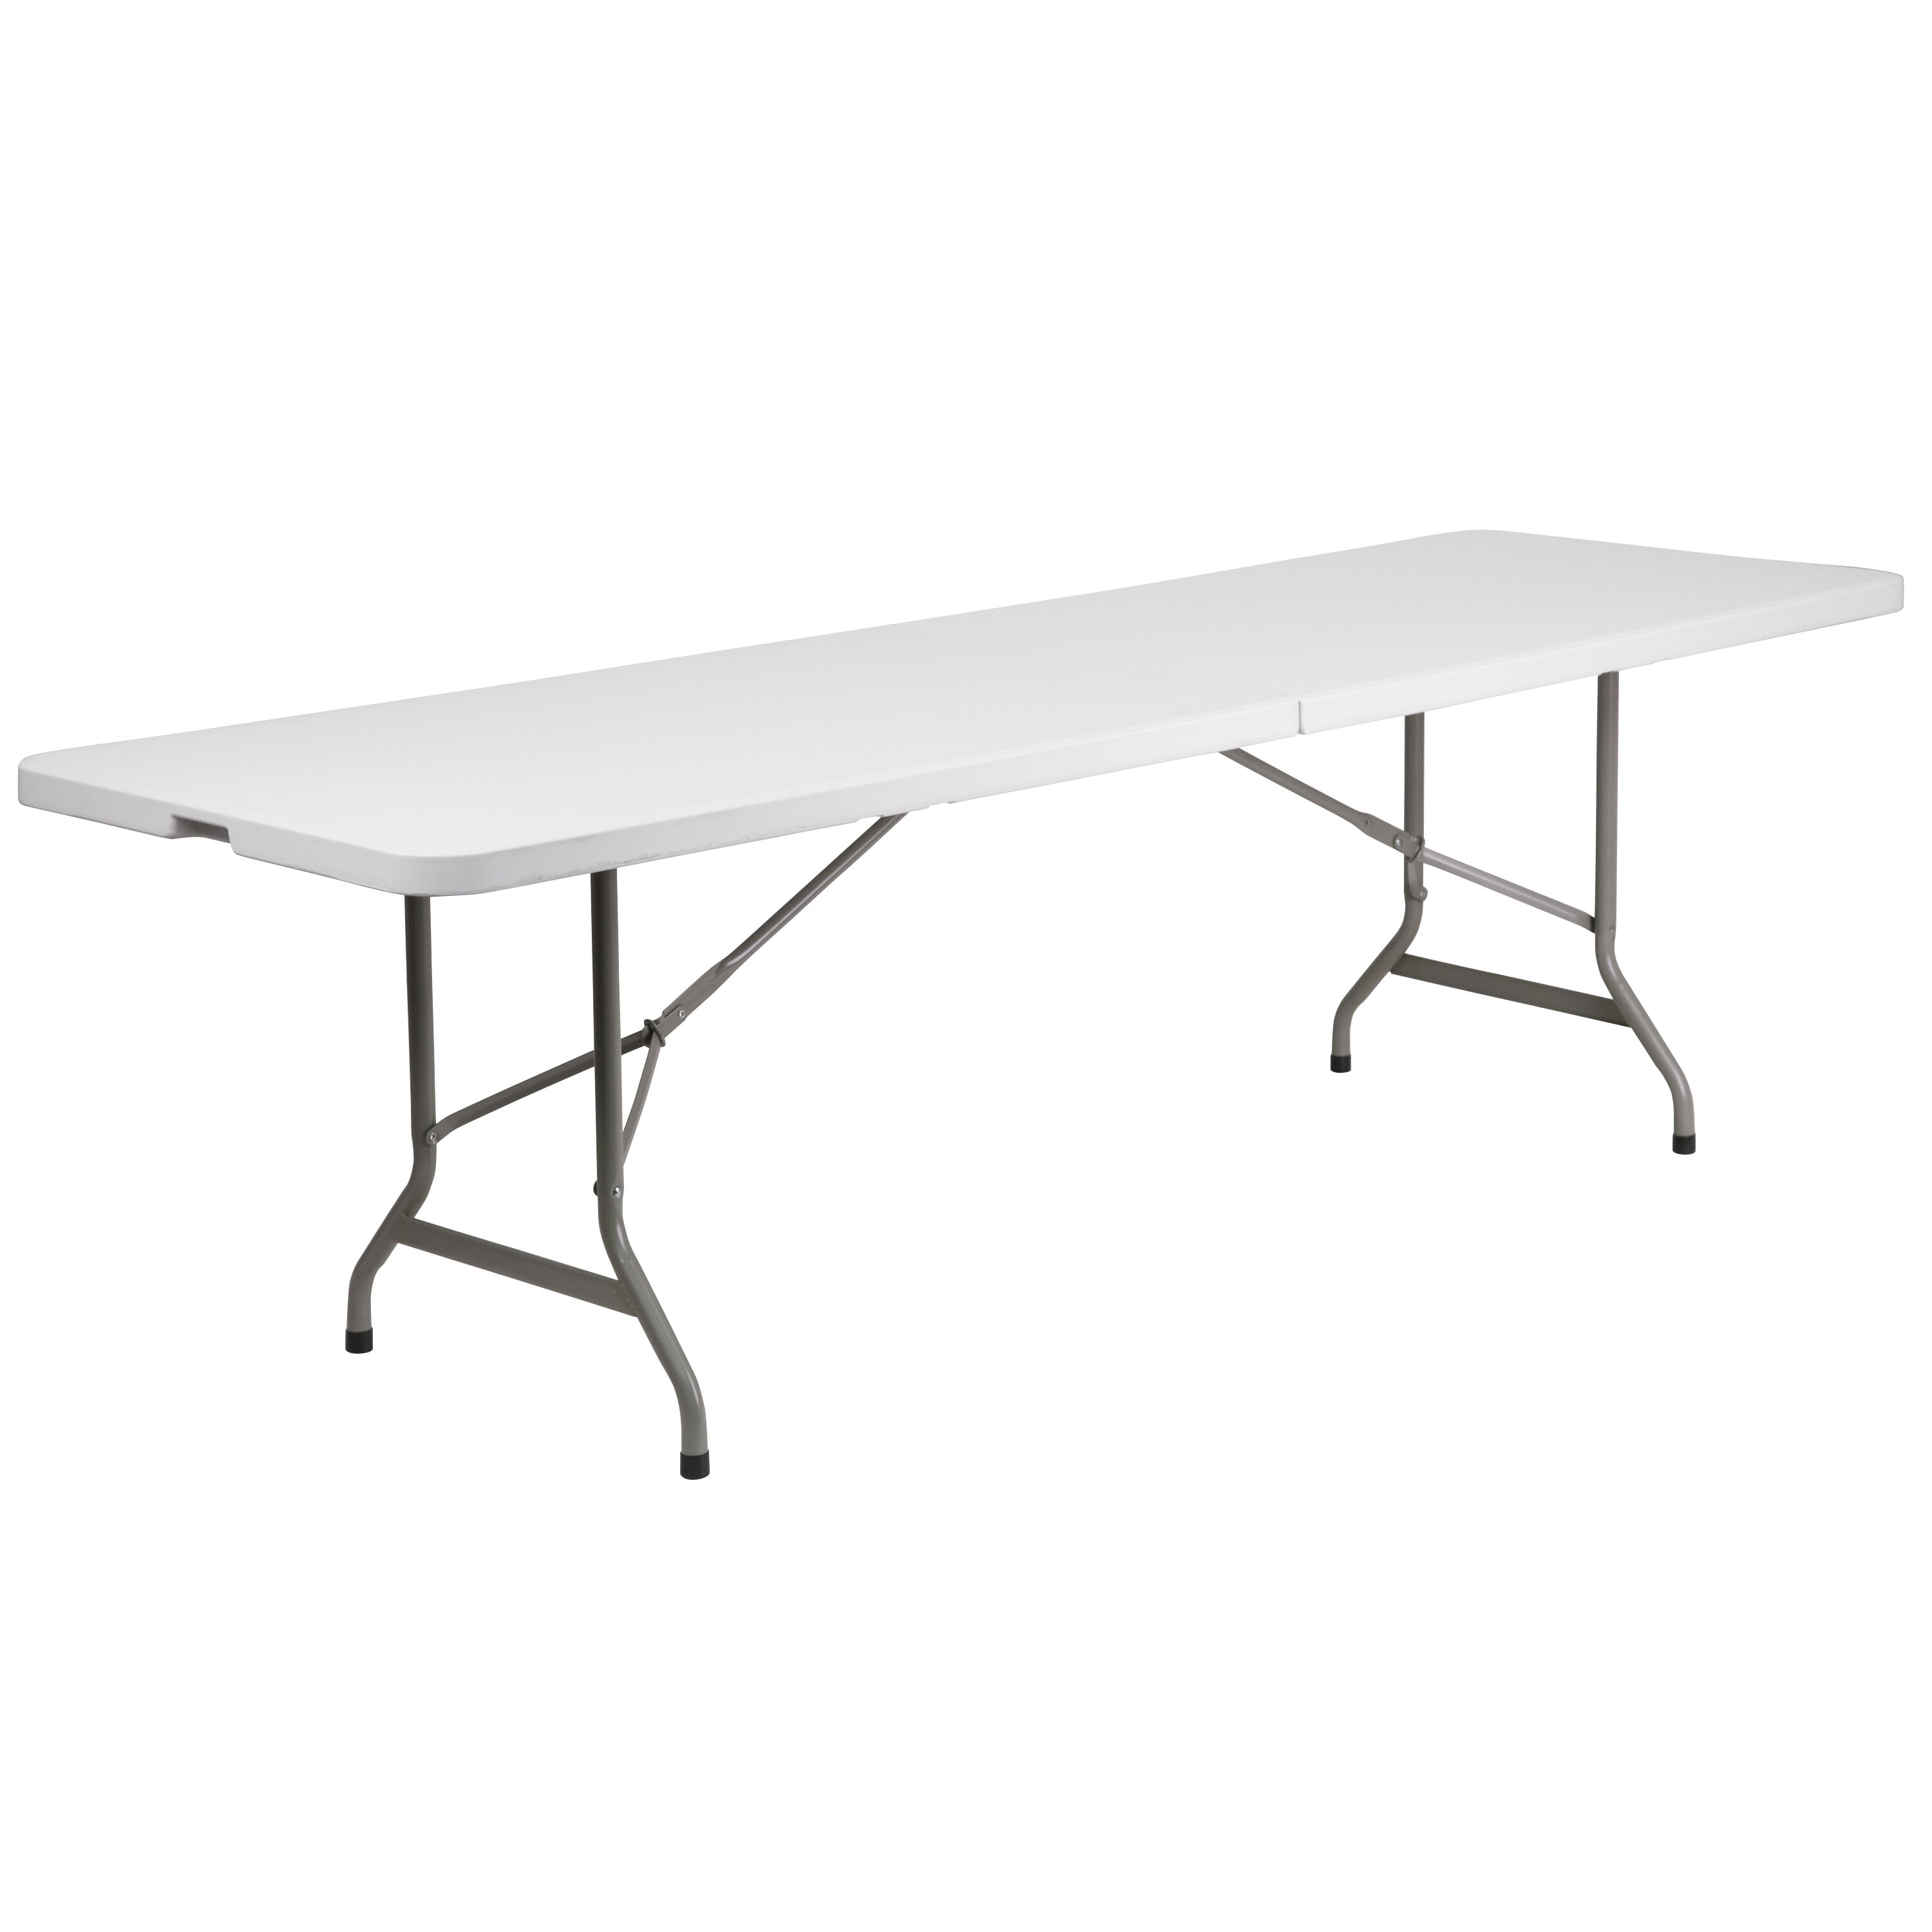 30u0027u0027W X 96u0027u0027L Bi Fold Granite White Plastic Folding Table